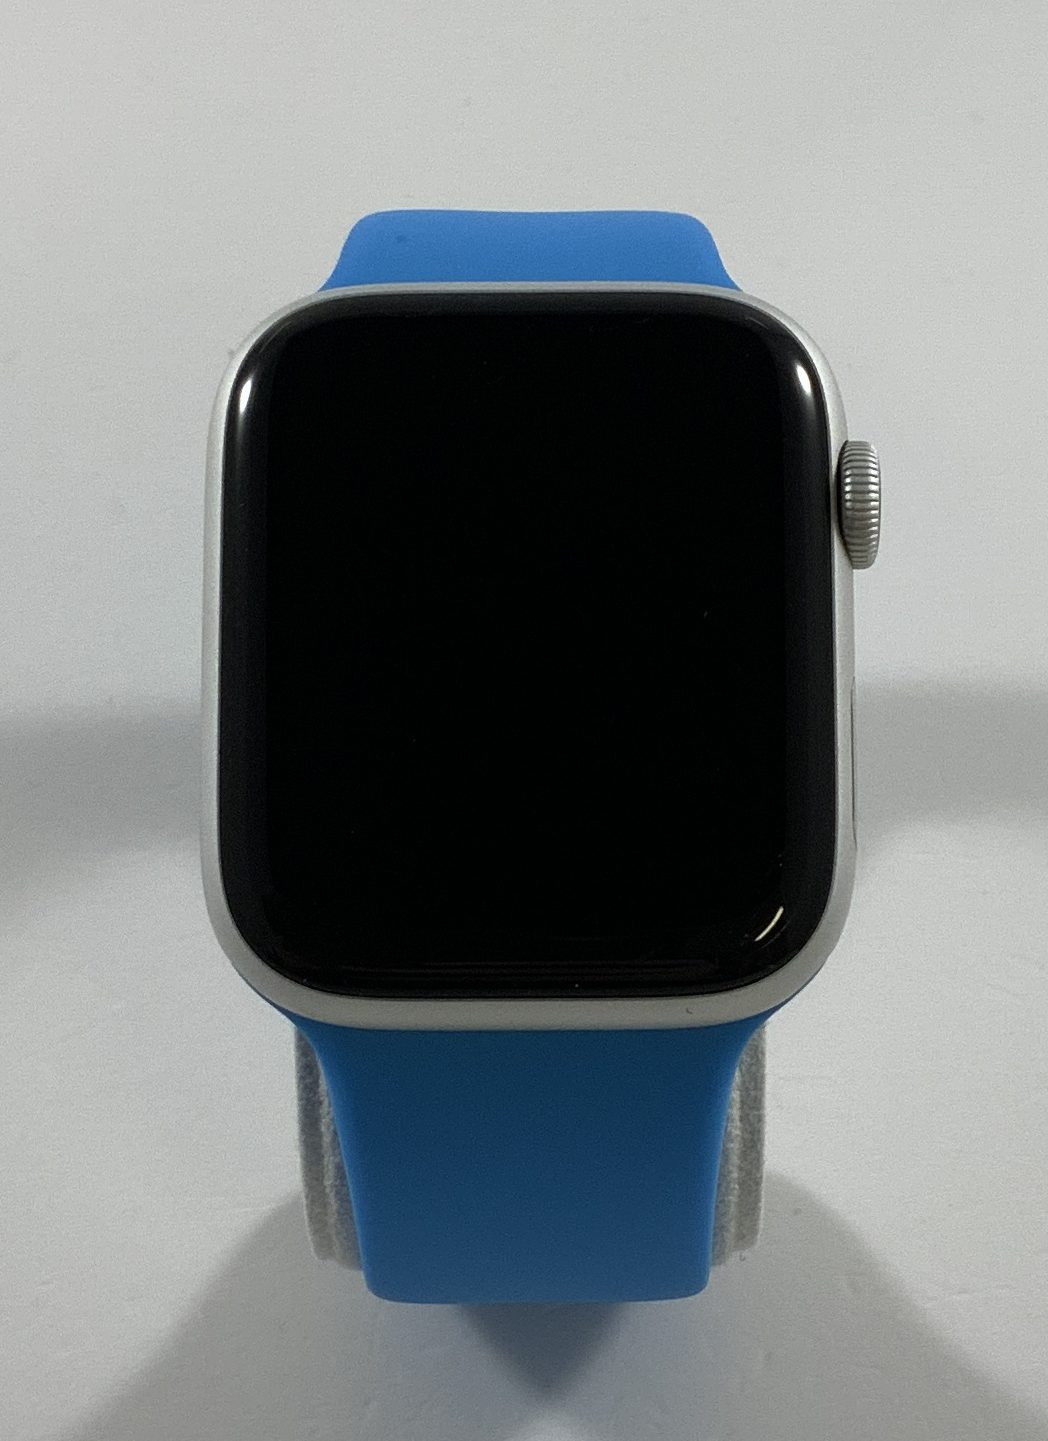 Watch Series 4 Aluminum Cellular (44mm), Silver, Blue silicone band (3rd party), Kuva 1